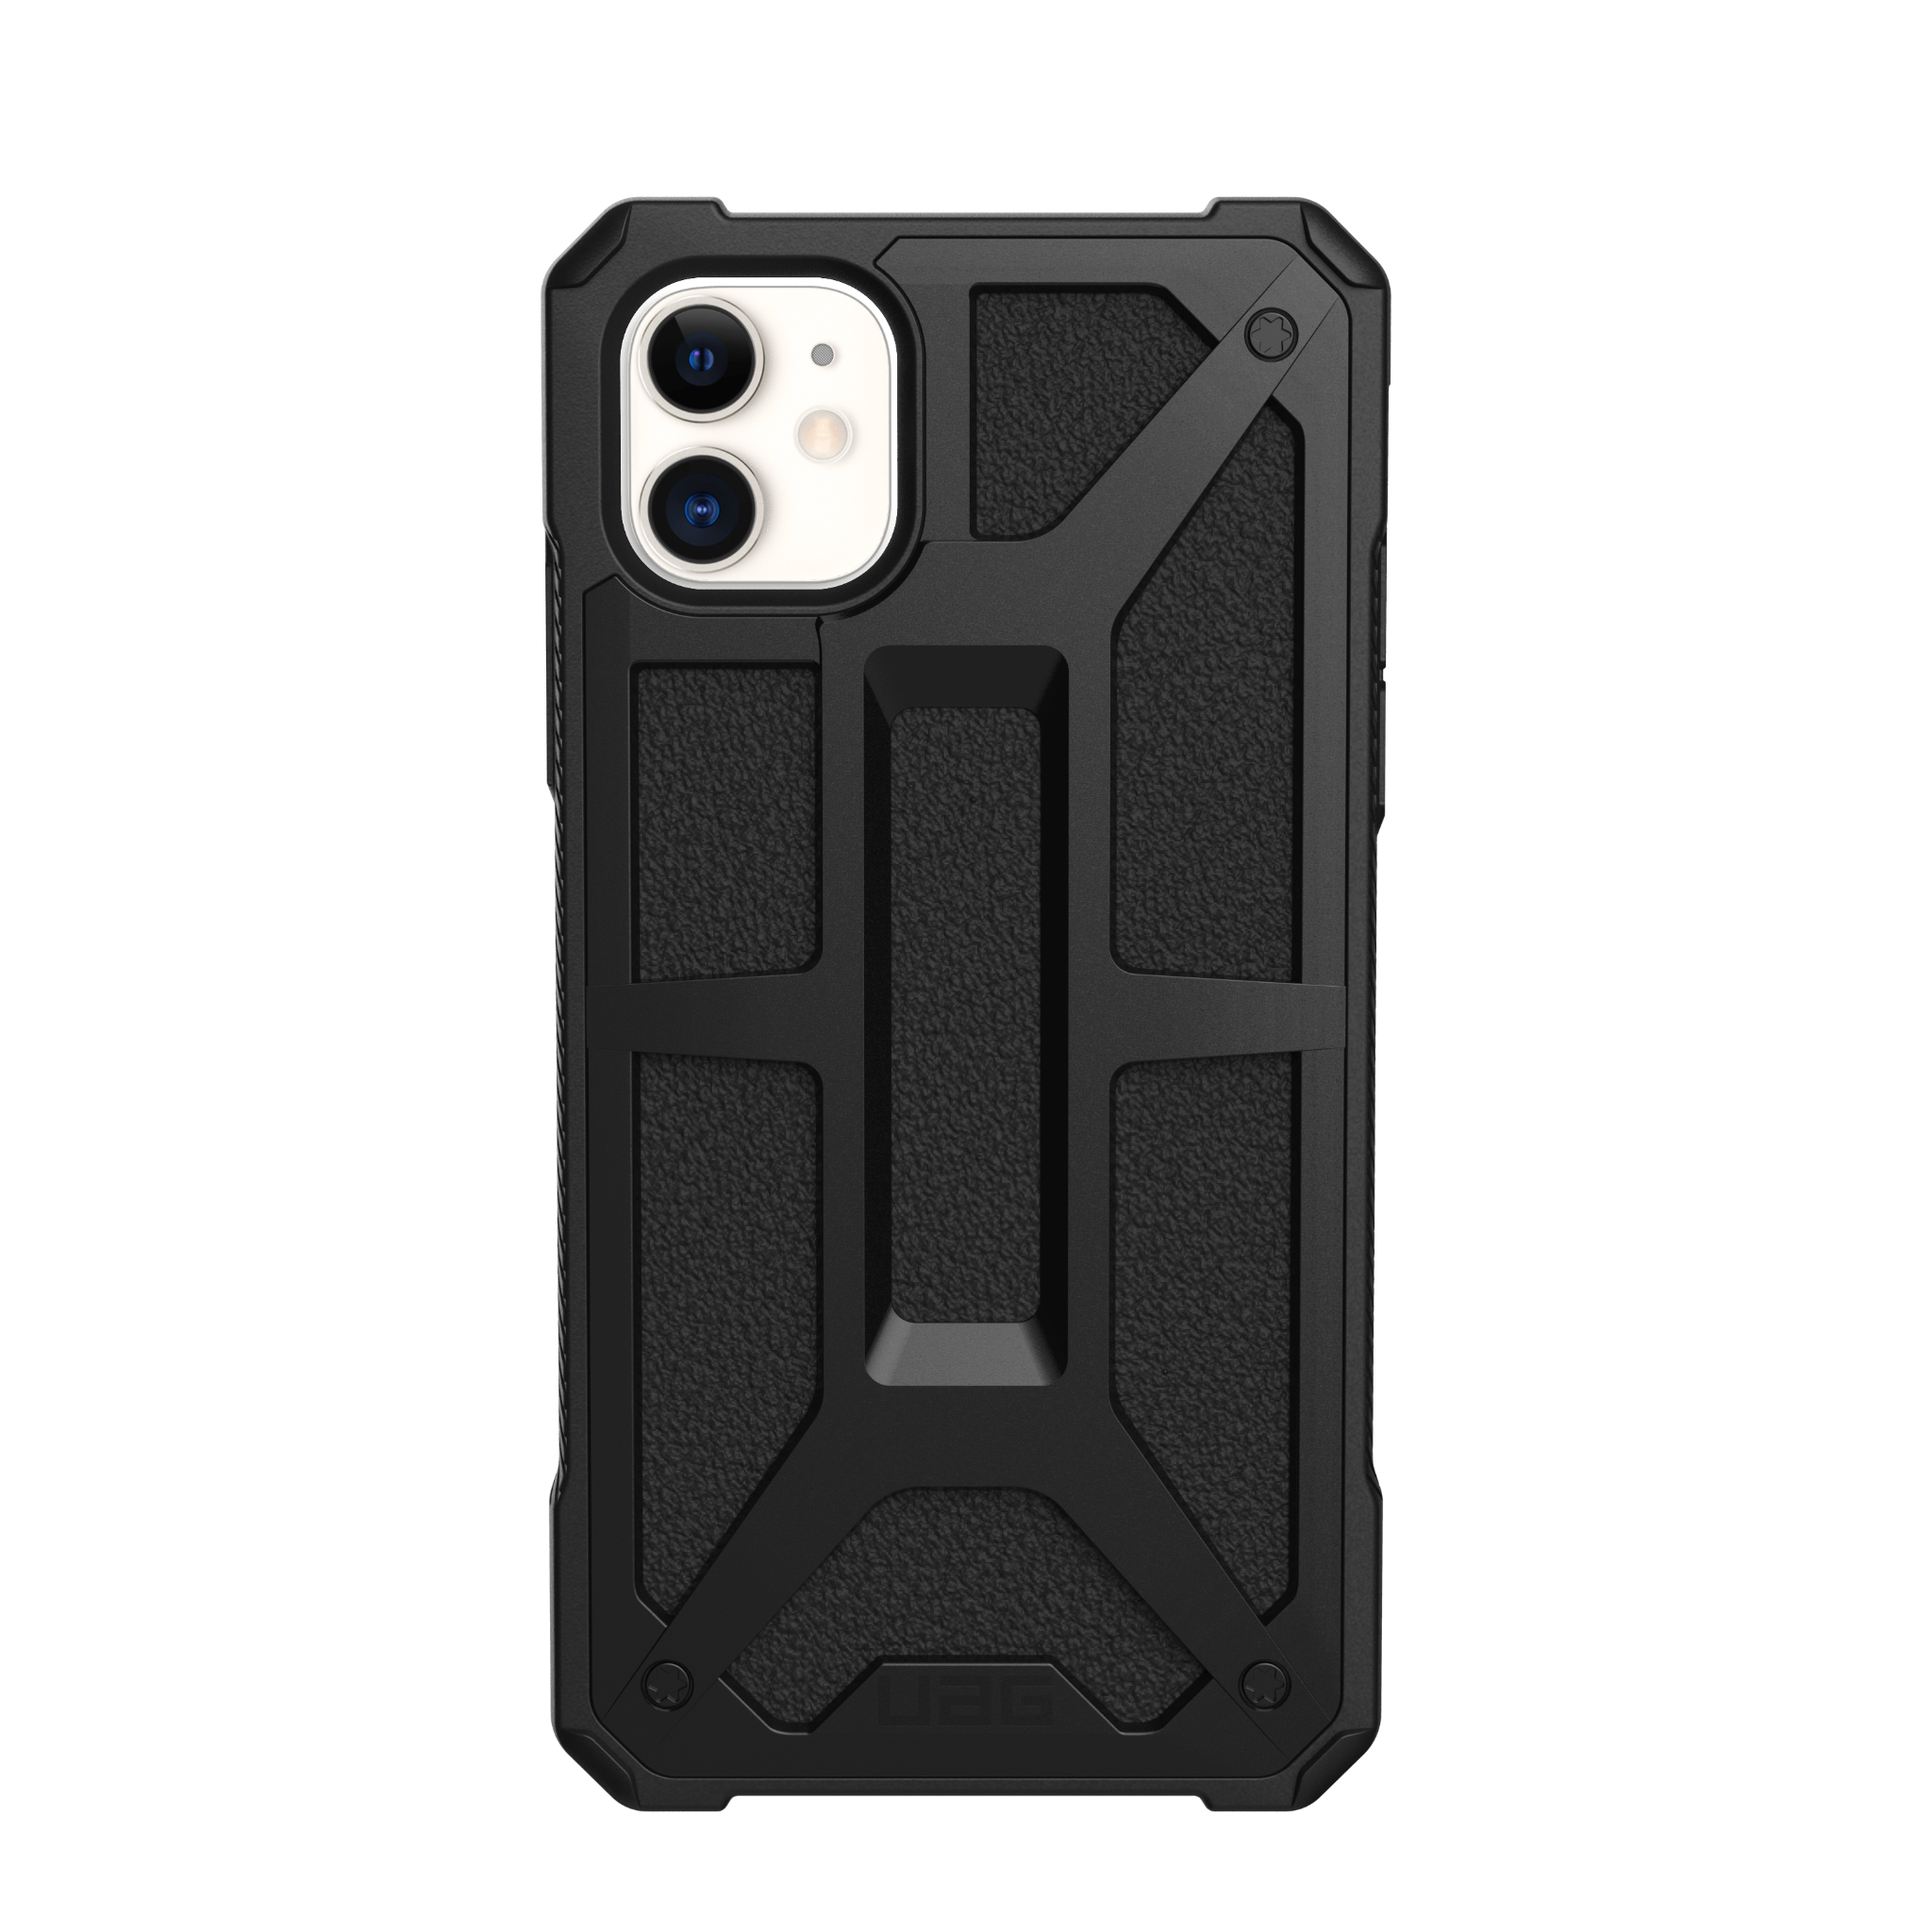 ỐP LƯNG UAG MONARCH CHO IPHONE 11 PRO [5.8-INCH] - Black